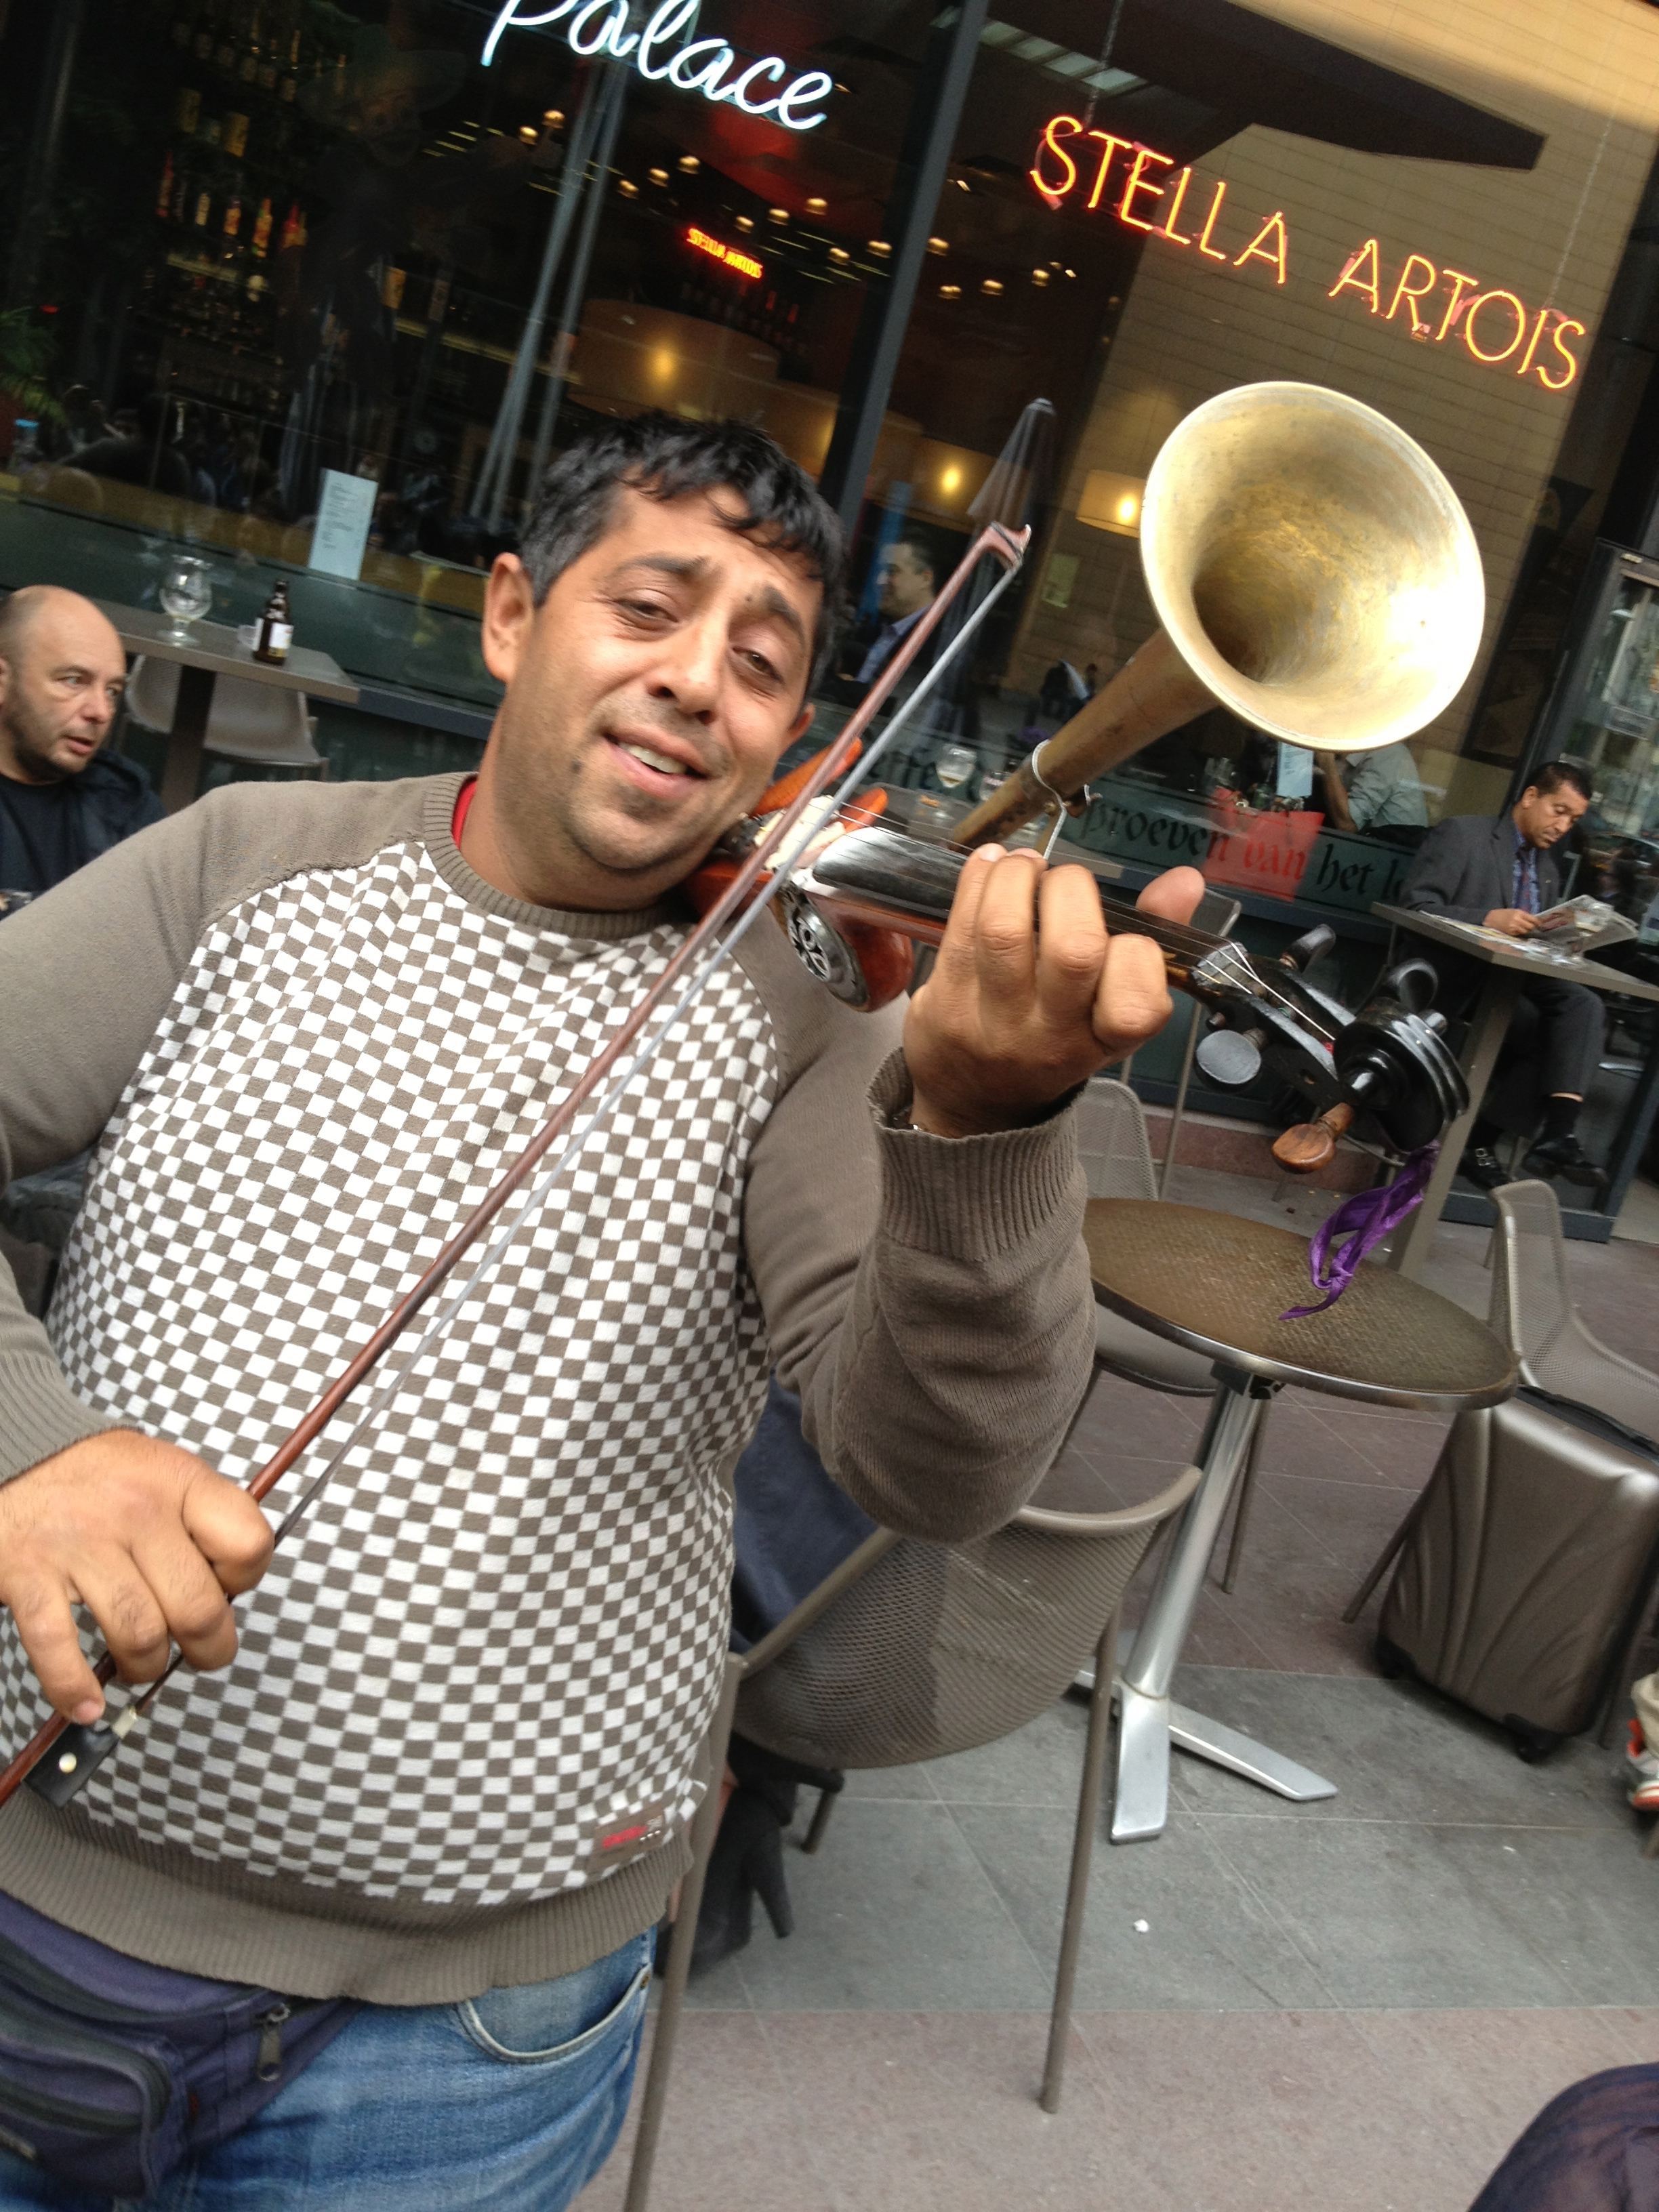 File:Busker playing a stroh violin, Brussel Midi train station jpg